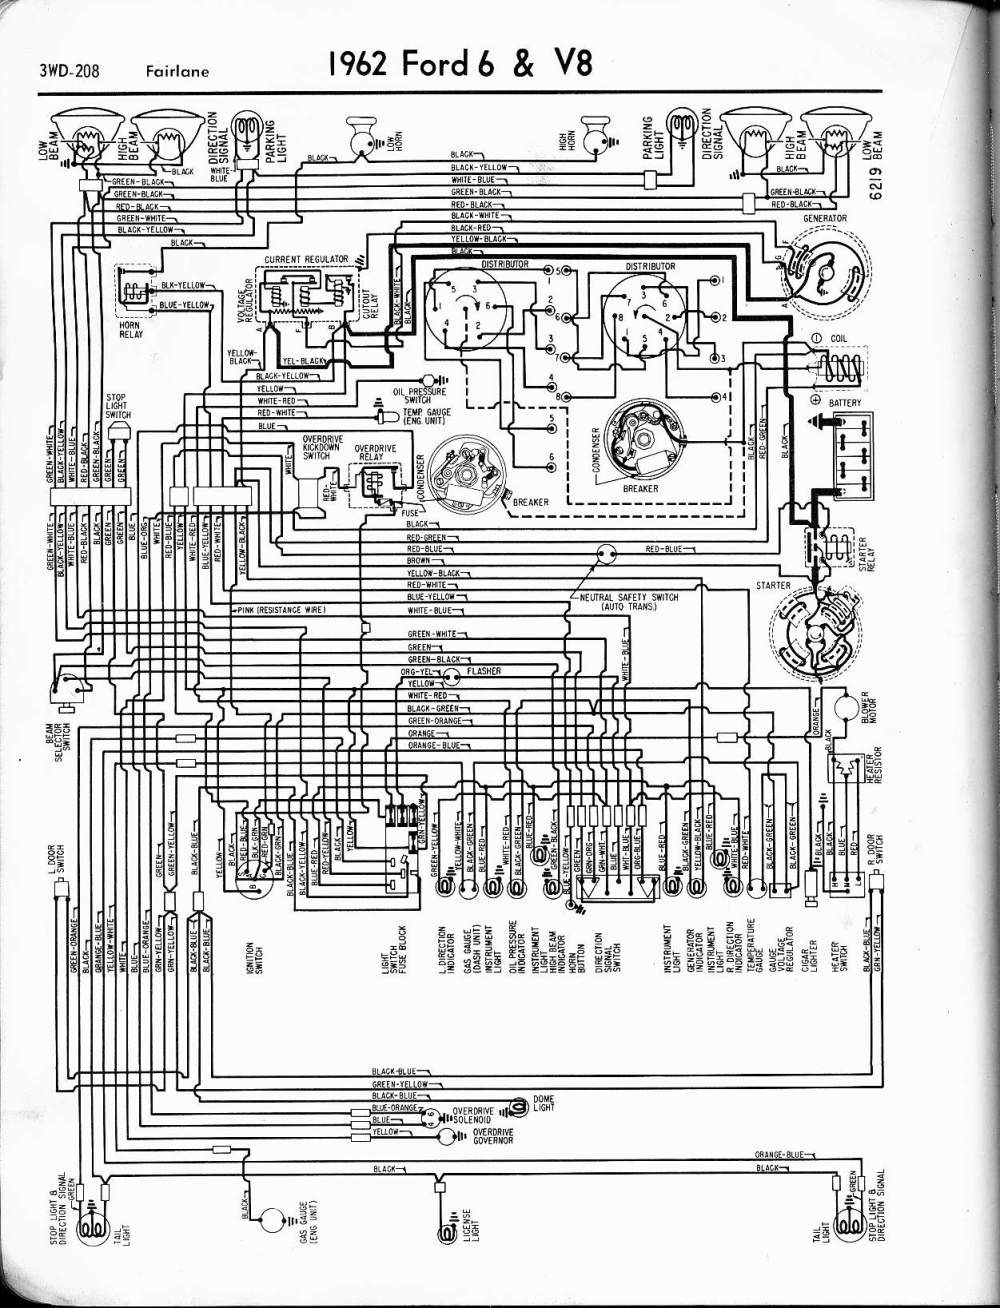 medium resolution of 65 ranchero neutral safety switch wiring diagram wiring diagram 65 ranchero neutral safety switch wiring diagram